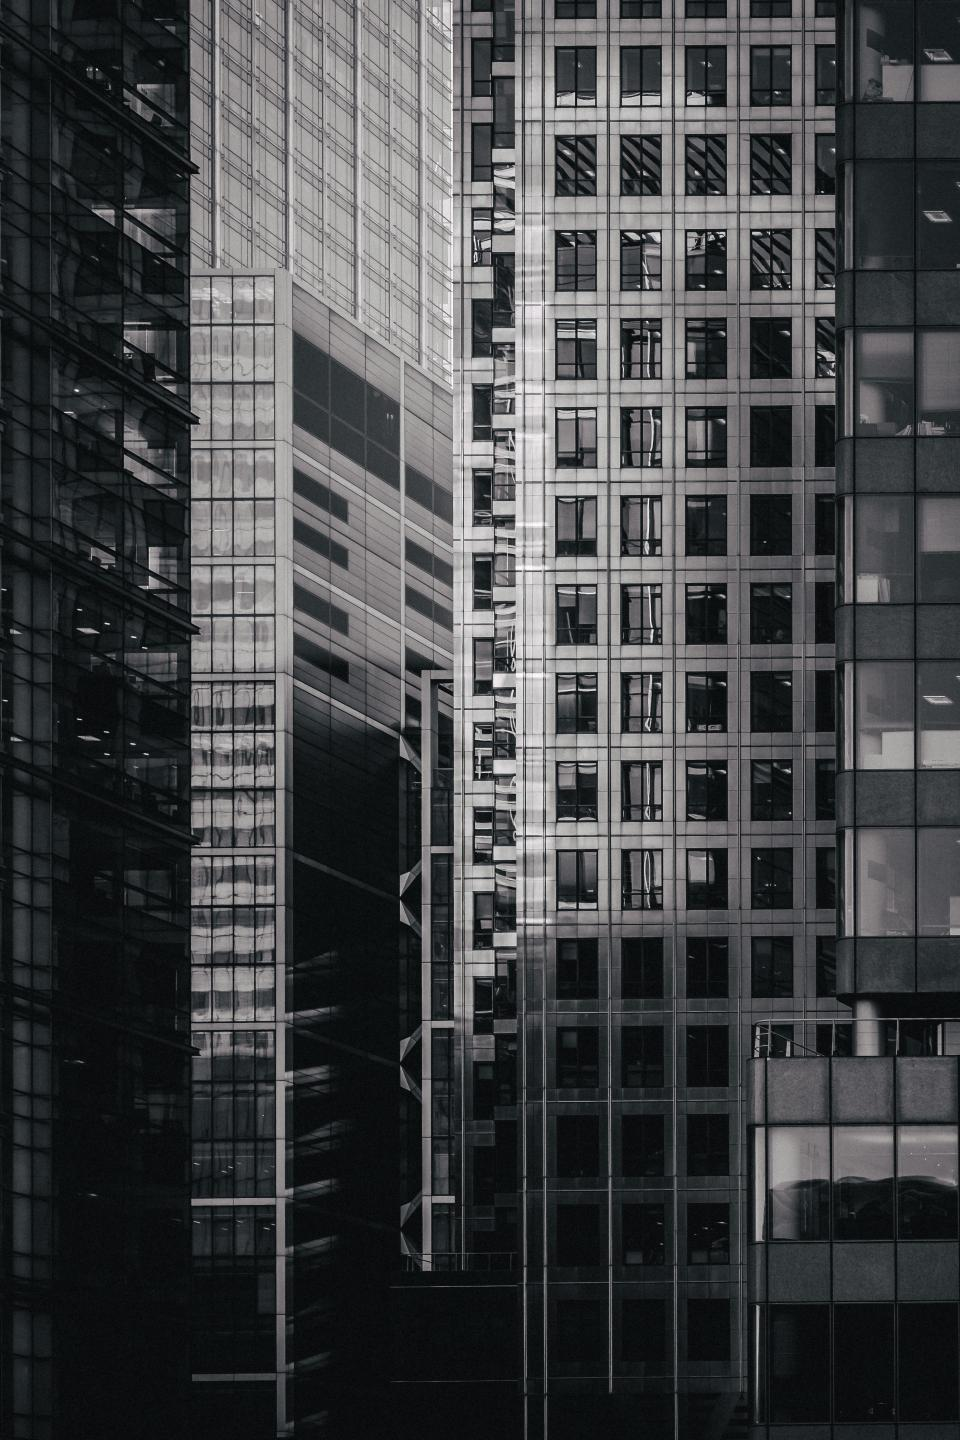 architecture building structure establishment apartment windows condominium hotel black and white monochrome